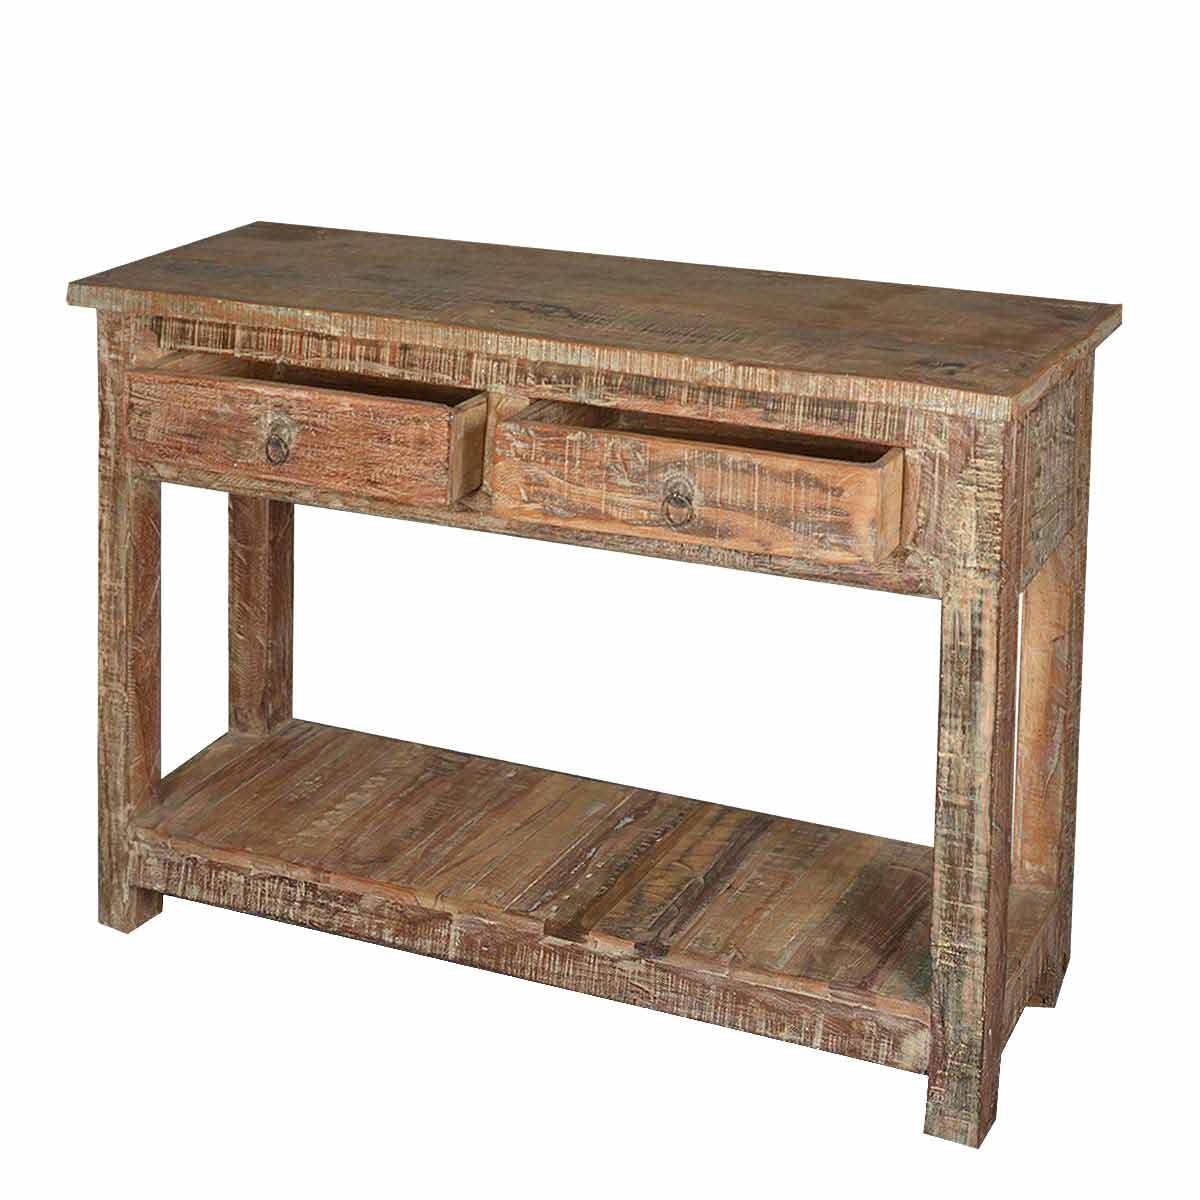 rustic cream sofa table modern outdoor sectional reclaimed wood naturally distressed hall console